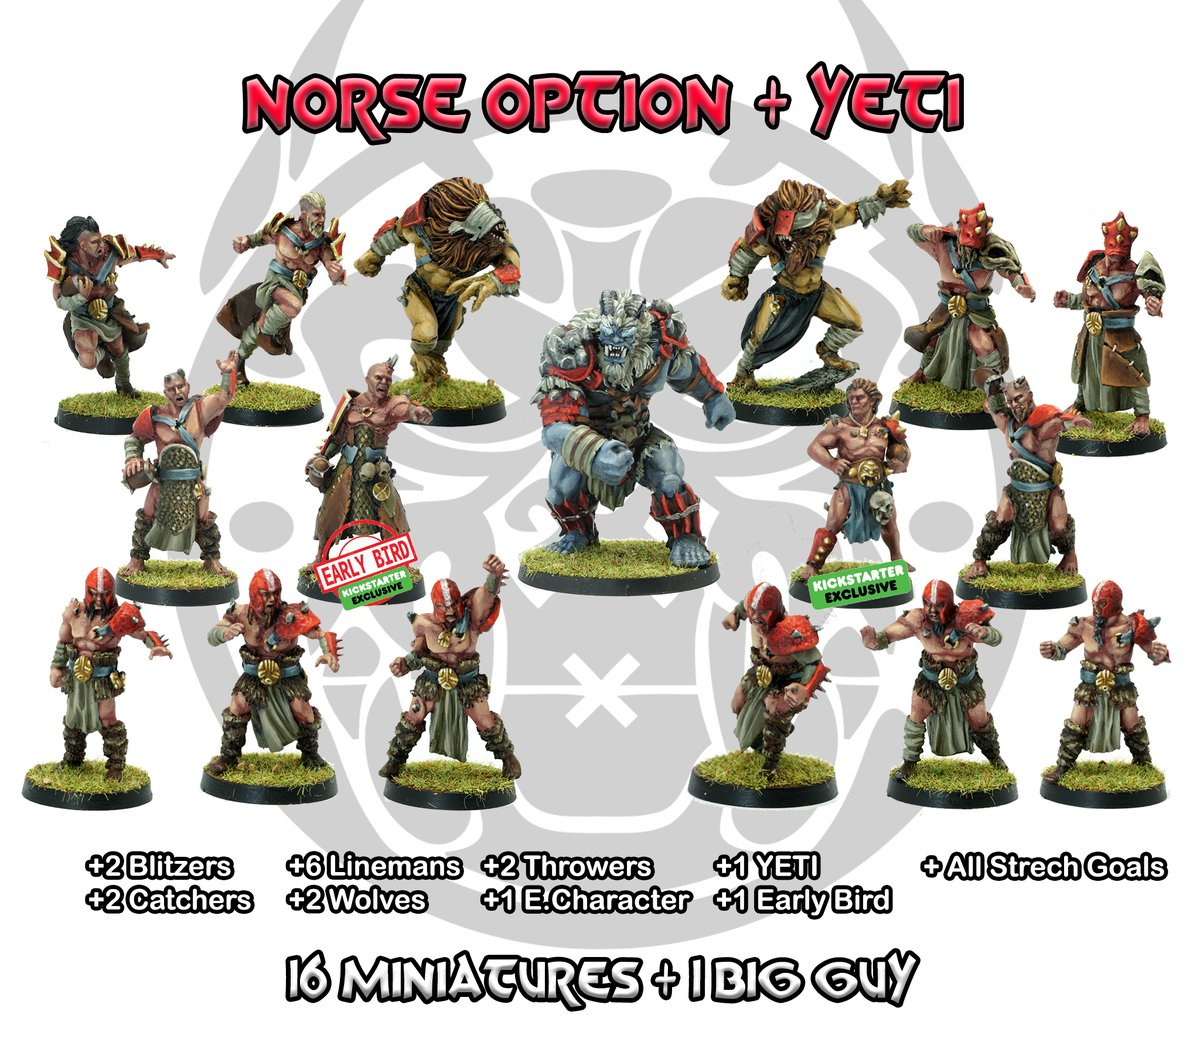 Join the cult. Thousand Faces Cult Kickstarter launched! https://t.co/3HqdNqYtVs  #miniatures #bloodbowl #paintingminiatures #WarhammerCommunity #FantasyFootball #paintingminiatures #boardgames #tabletopgames #miniaturepainting #zenitminiatures https://t.co/Nqg25KVl4C